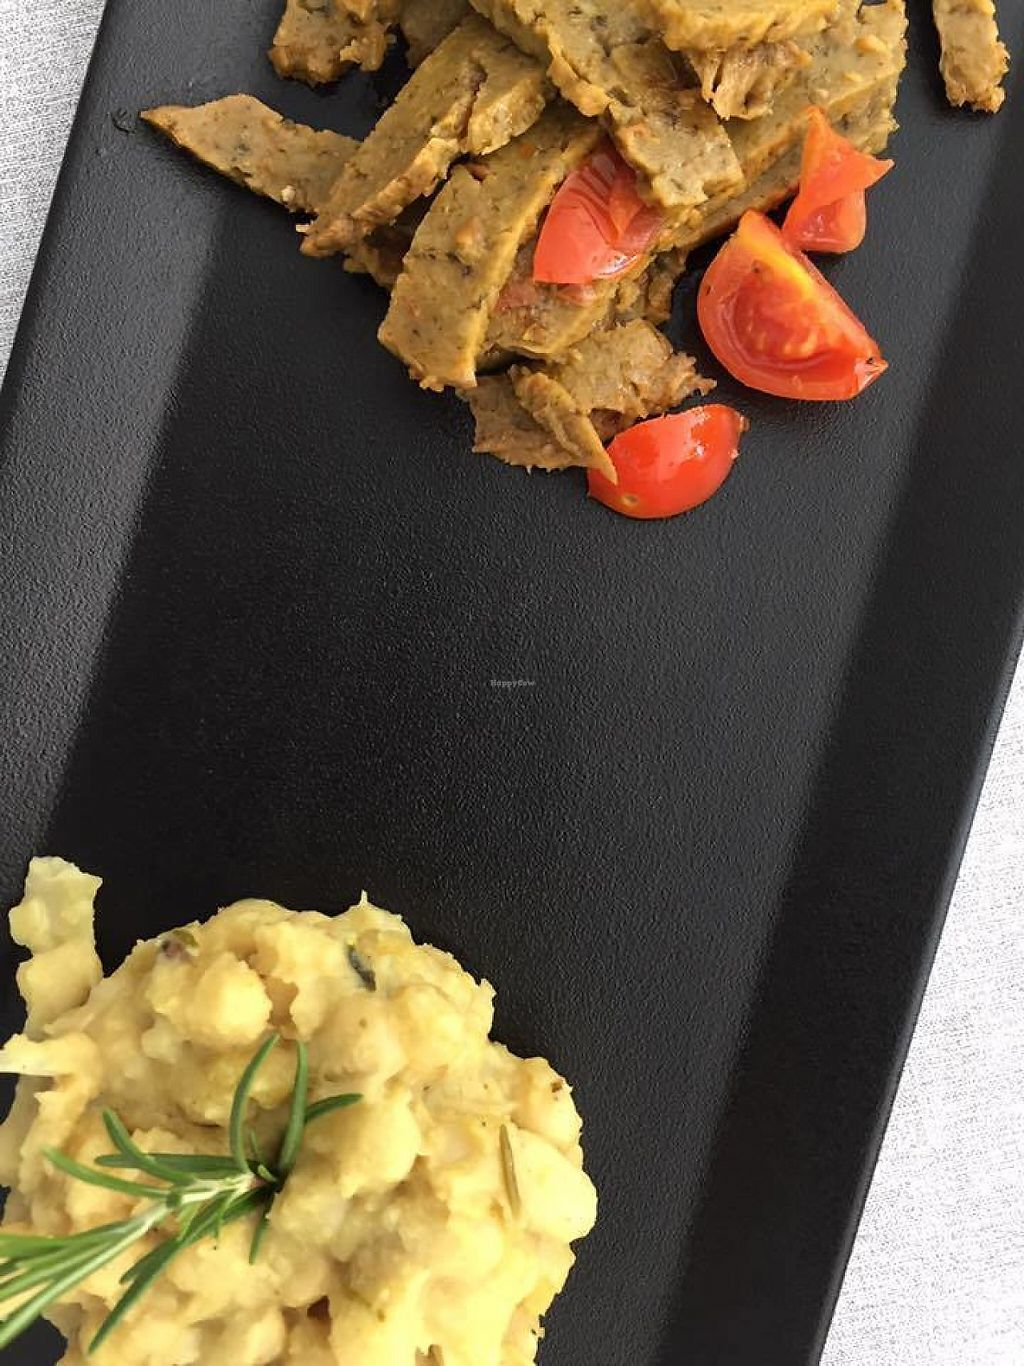 """Photo of Bianco Rosso & Verdure  by <a href=""""/members/profile/LucieS"""">LucieS</a> <br/>Seitan and curried beans, delicious <br/> May 28, 2017  - <a href='/contact/abuse/image/79509/263319'>Report</a>"""